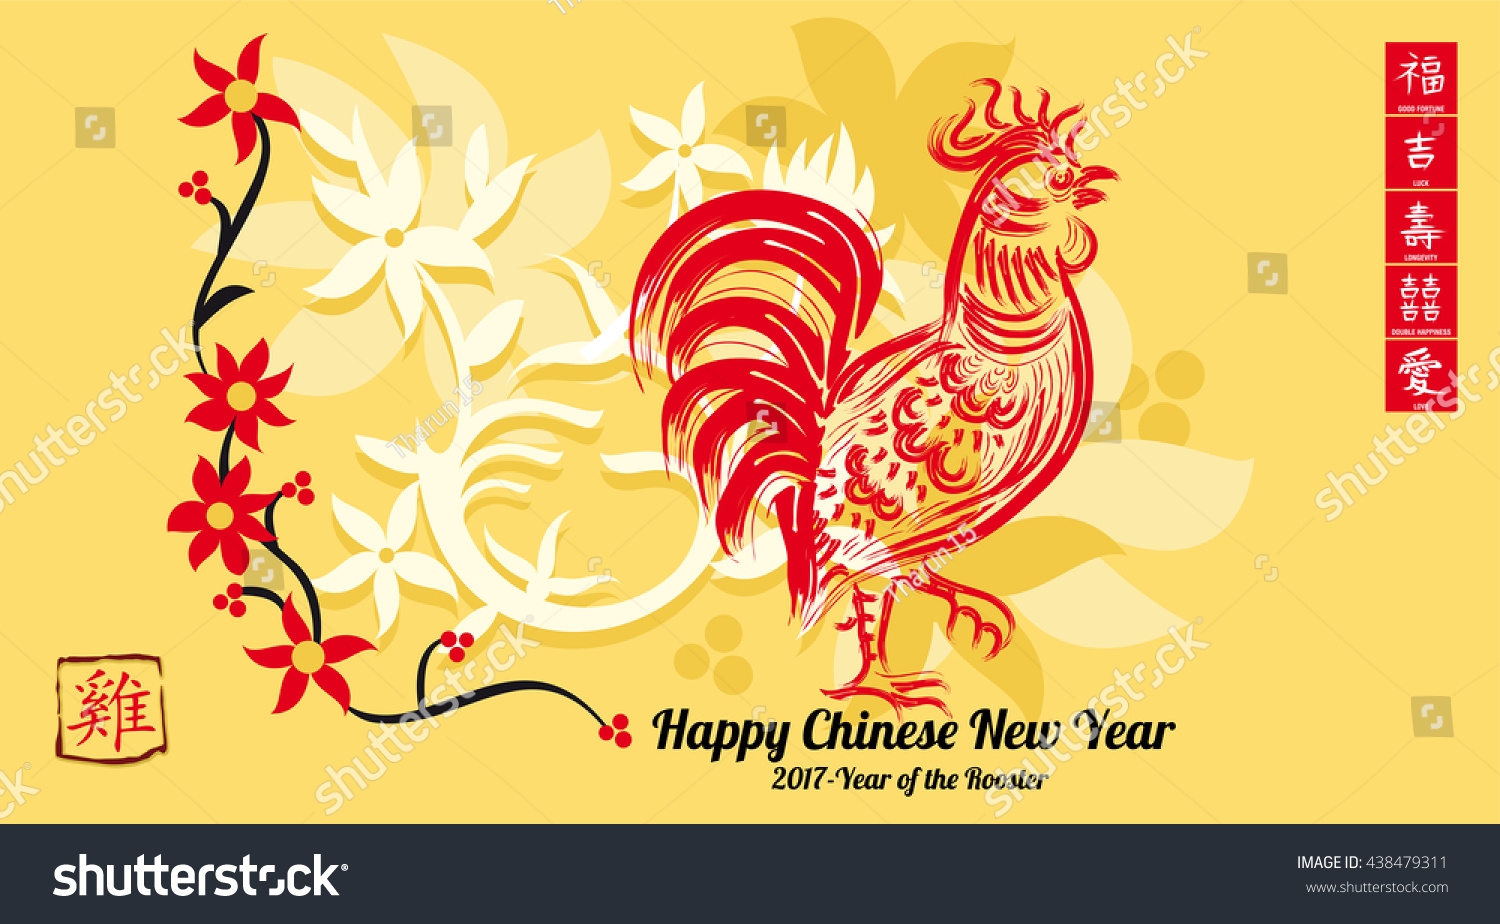 Royalty free chinese new year greeting card the 438479311 stock chinese new year greeting card the chinese calligraphy on the left translates to rooster the chinese m4hsunfo